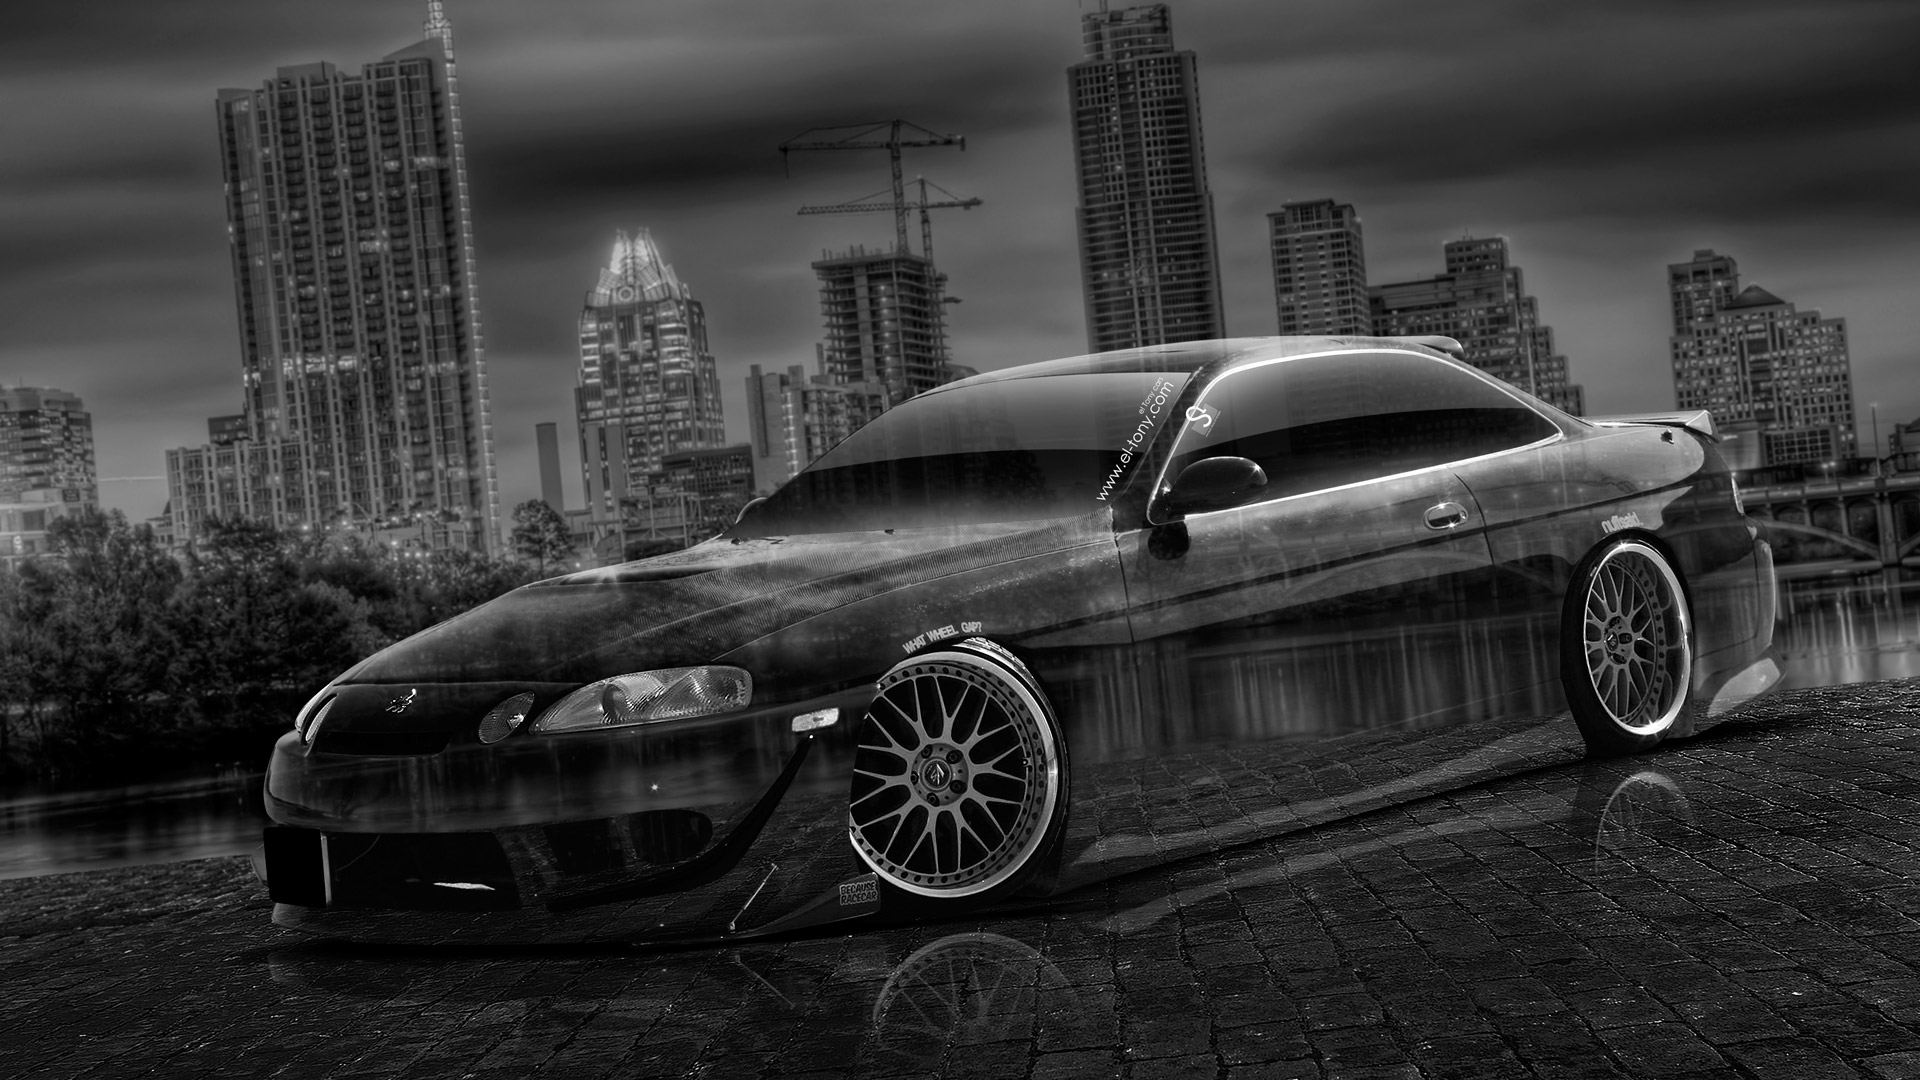 Toyota Soarer JDM Tuning Crystal City Car 2014